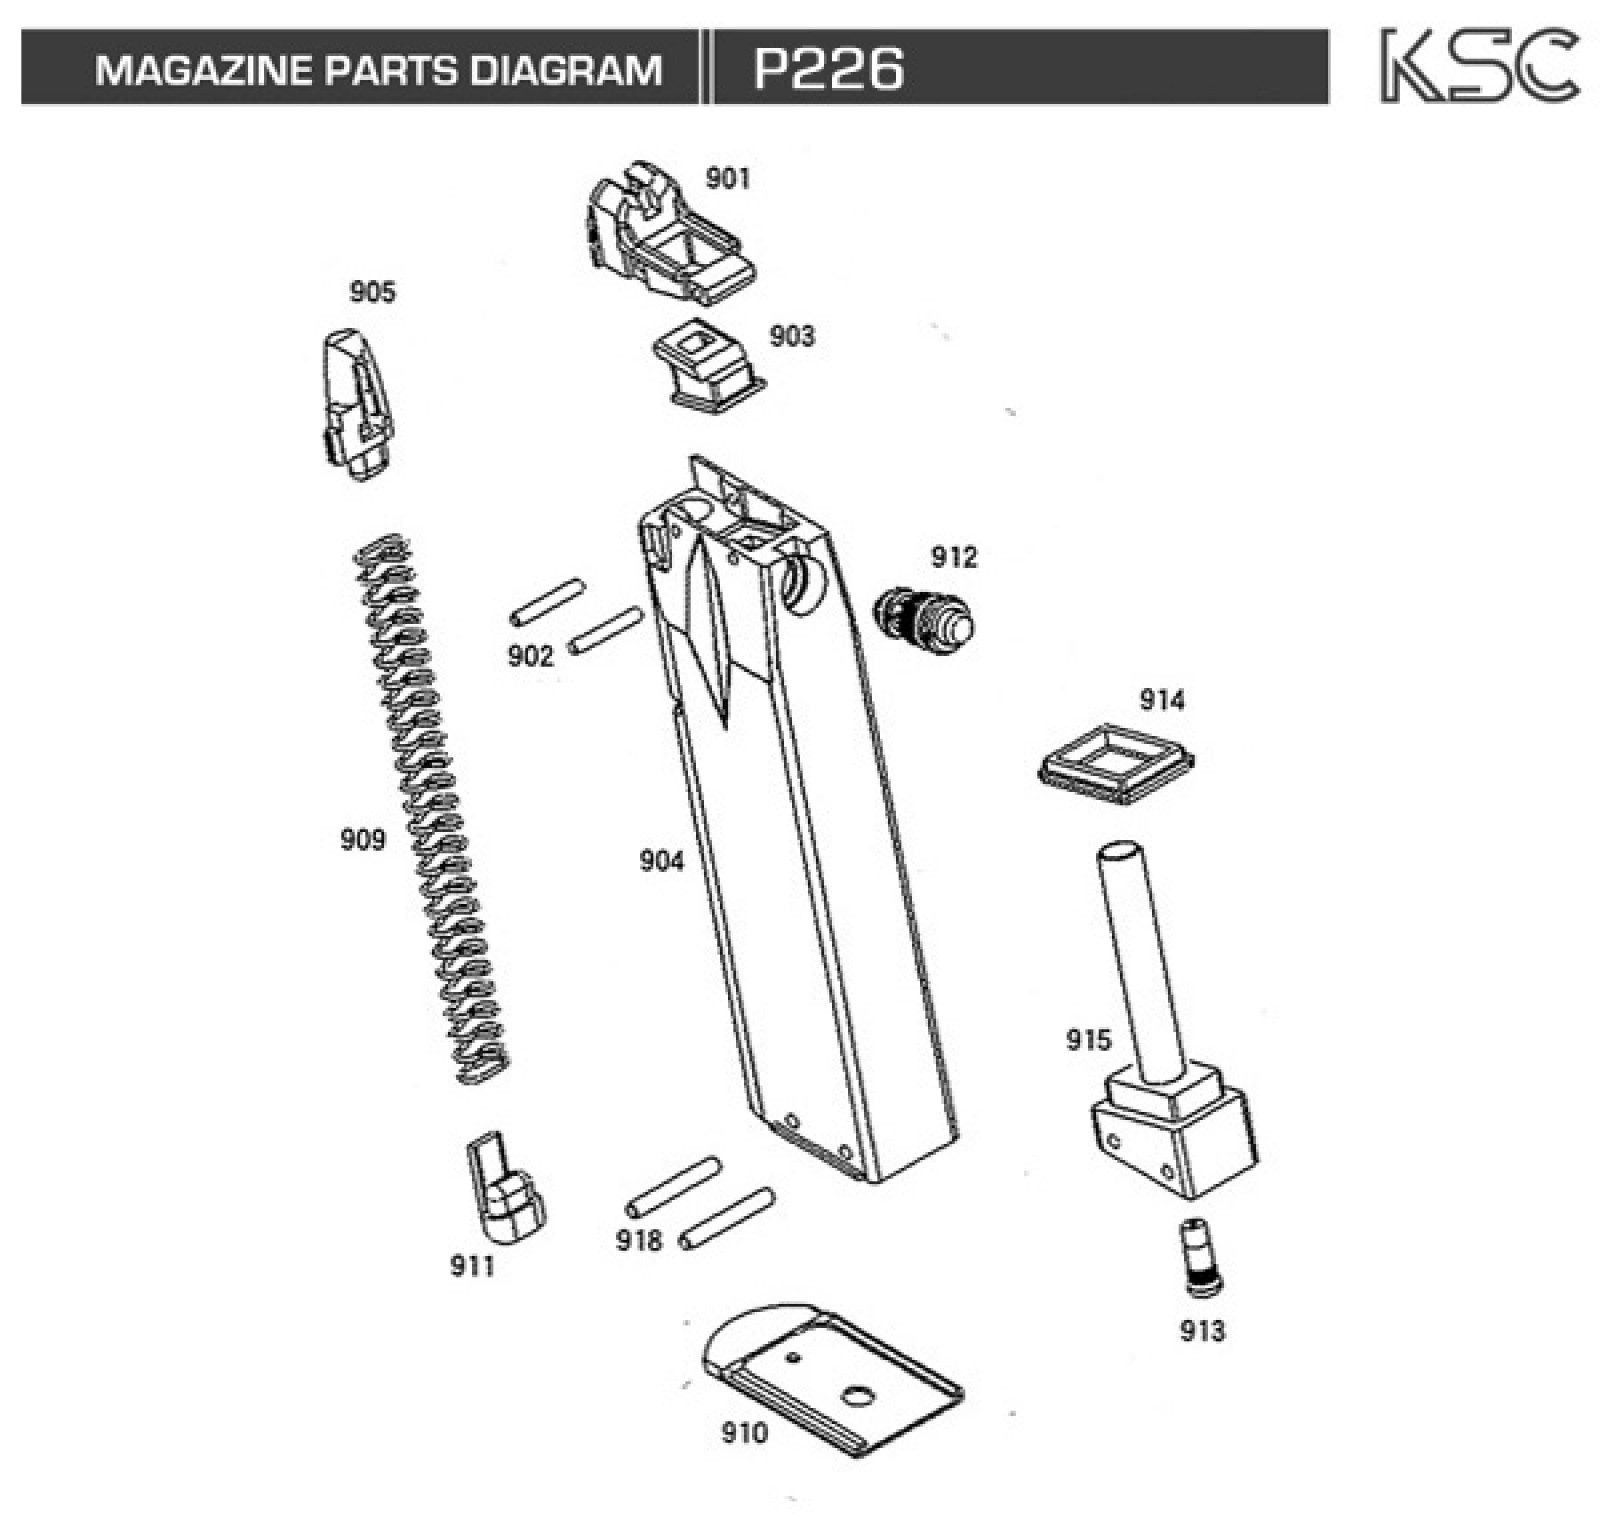 Exploded Diagram Ksc P226 Ksc Part Original Worldwide